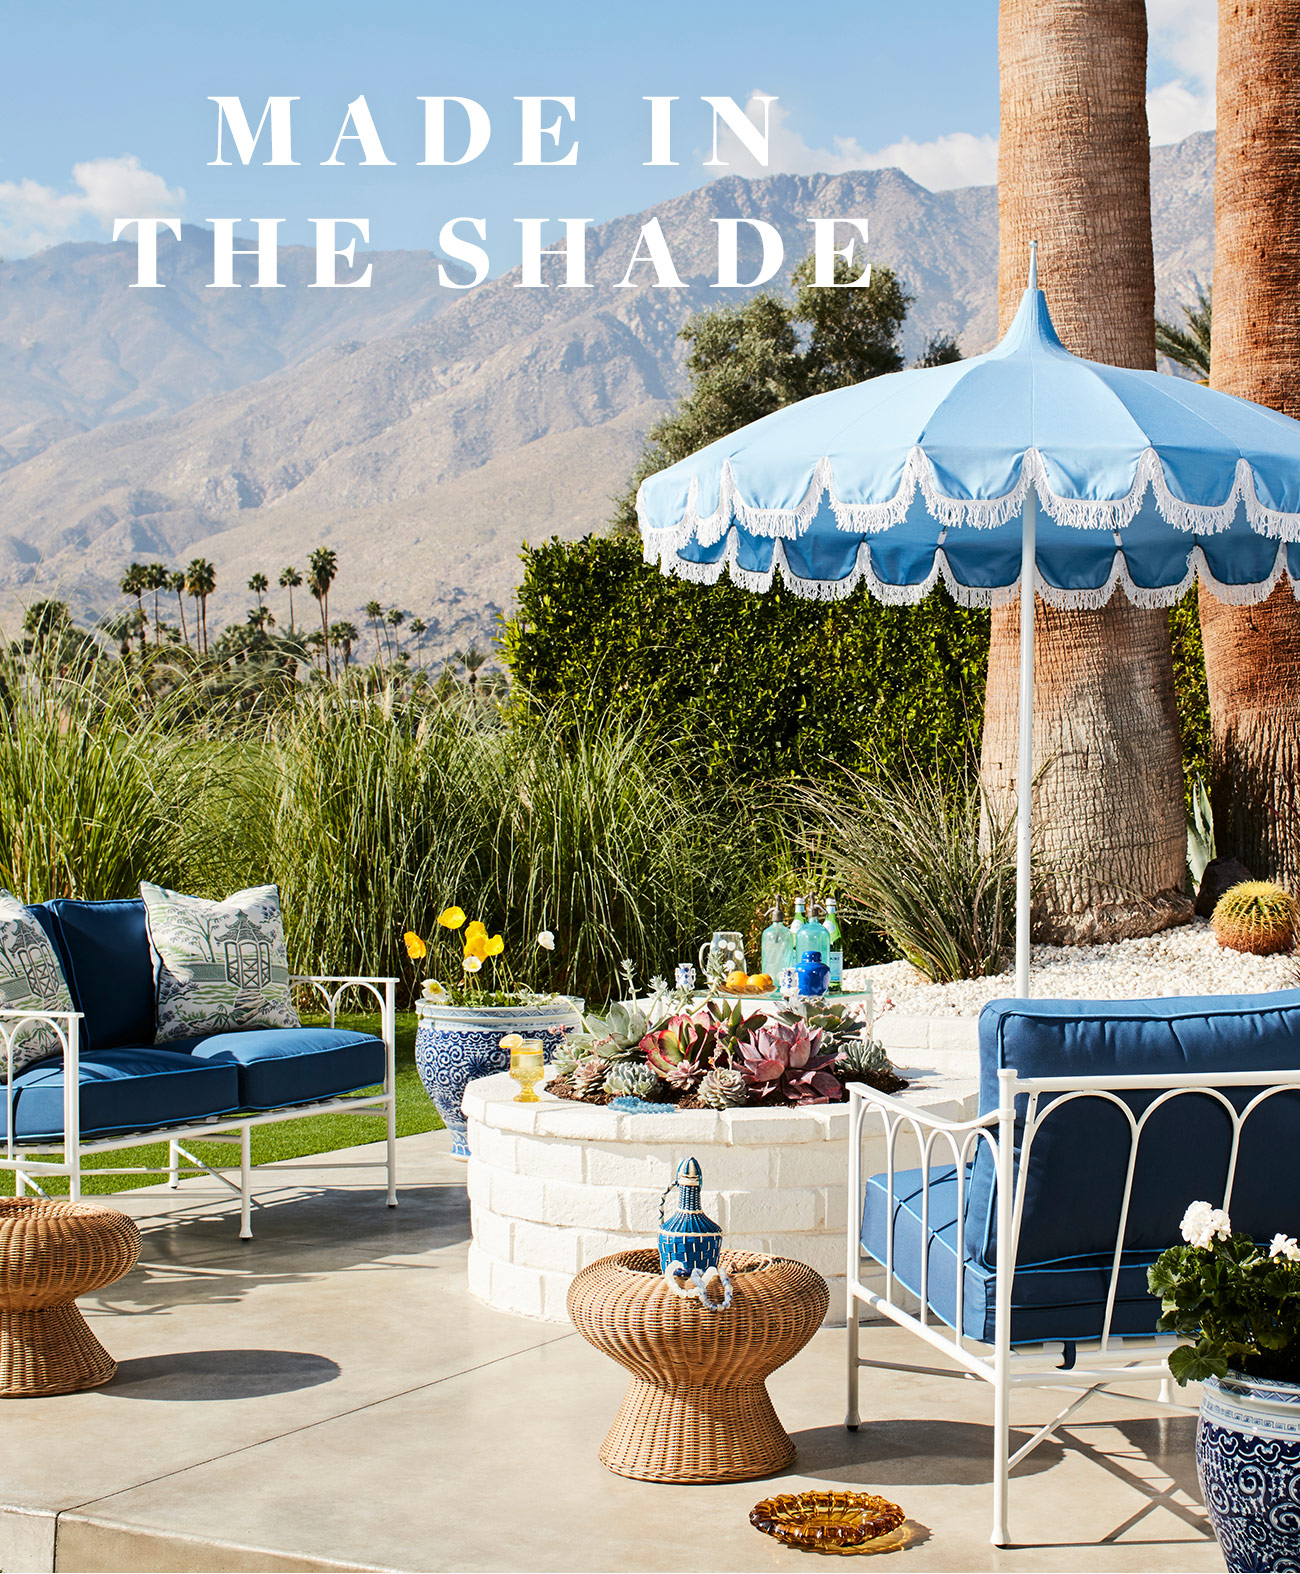 Keep Cool With Our Patio Umbrellas